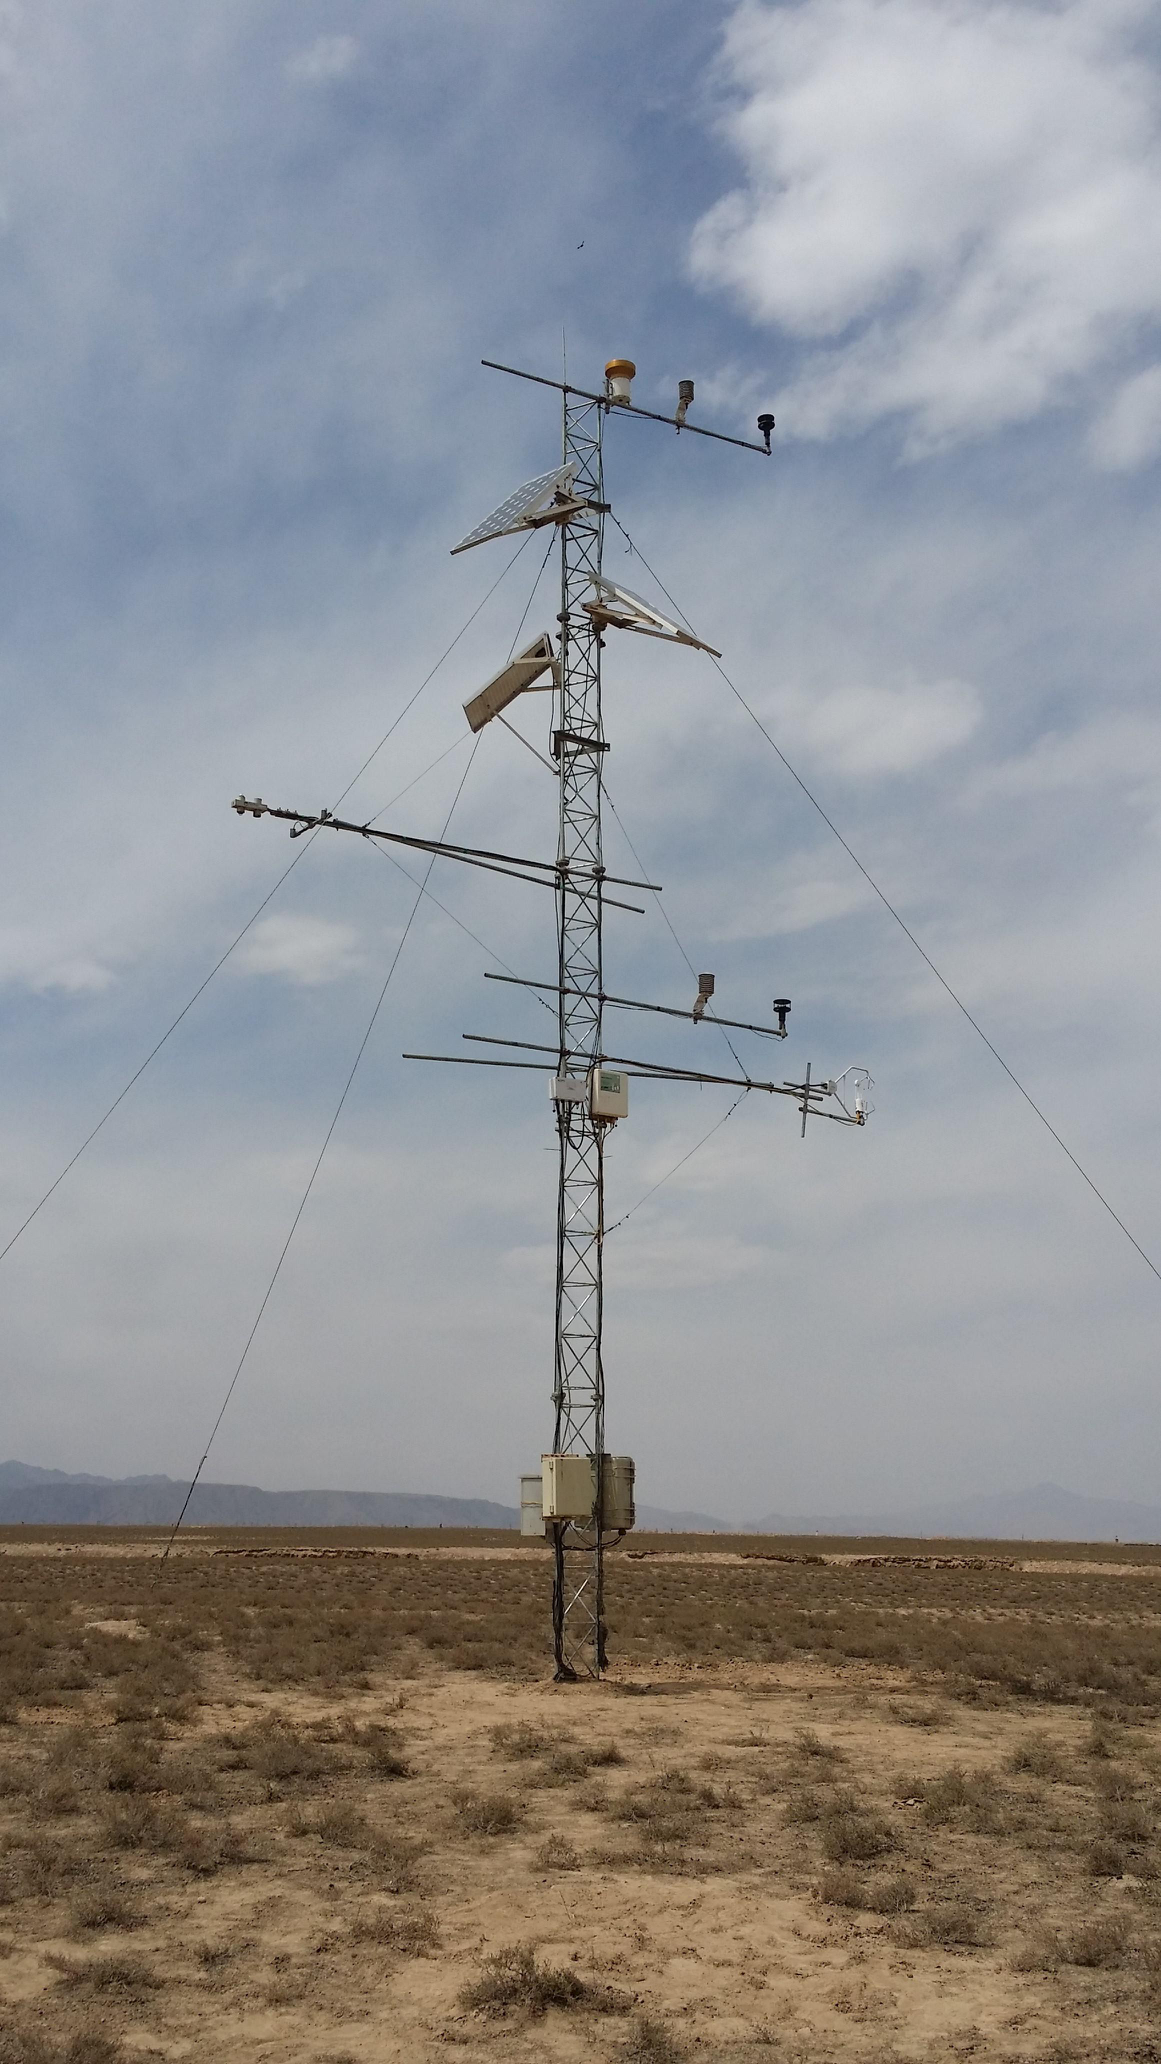 Qilian Mountains integrated observatory network: Dataset of Heihe integrated observatory network (eddy covariance system of Huazhaizi station, 2018)